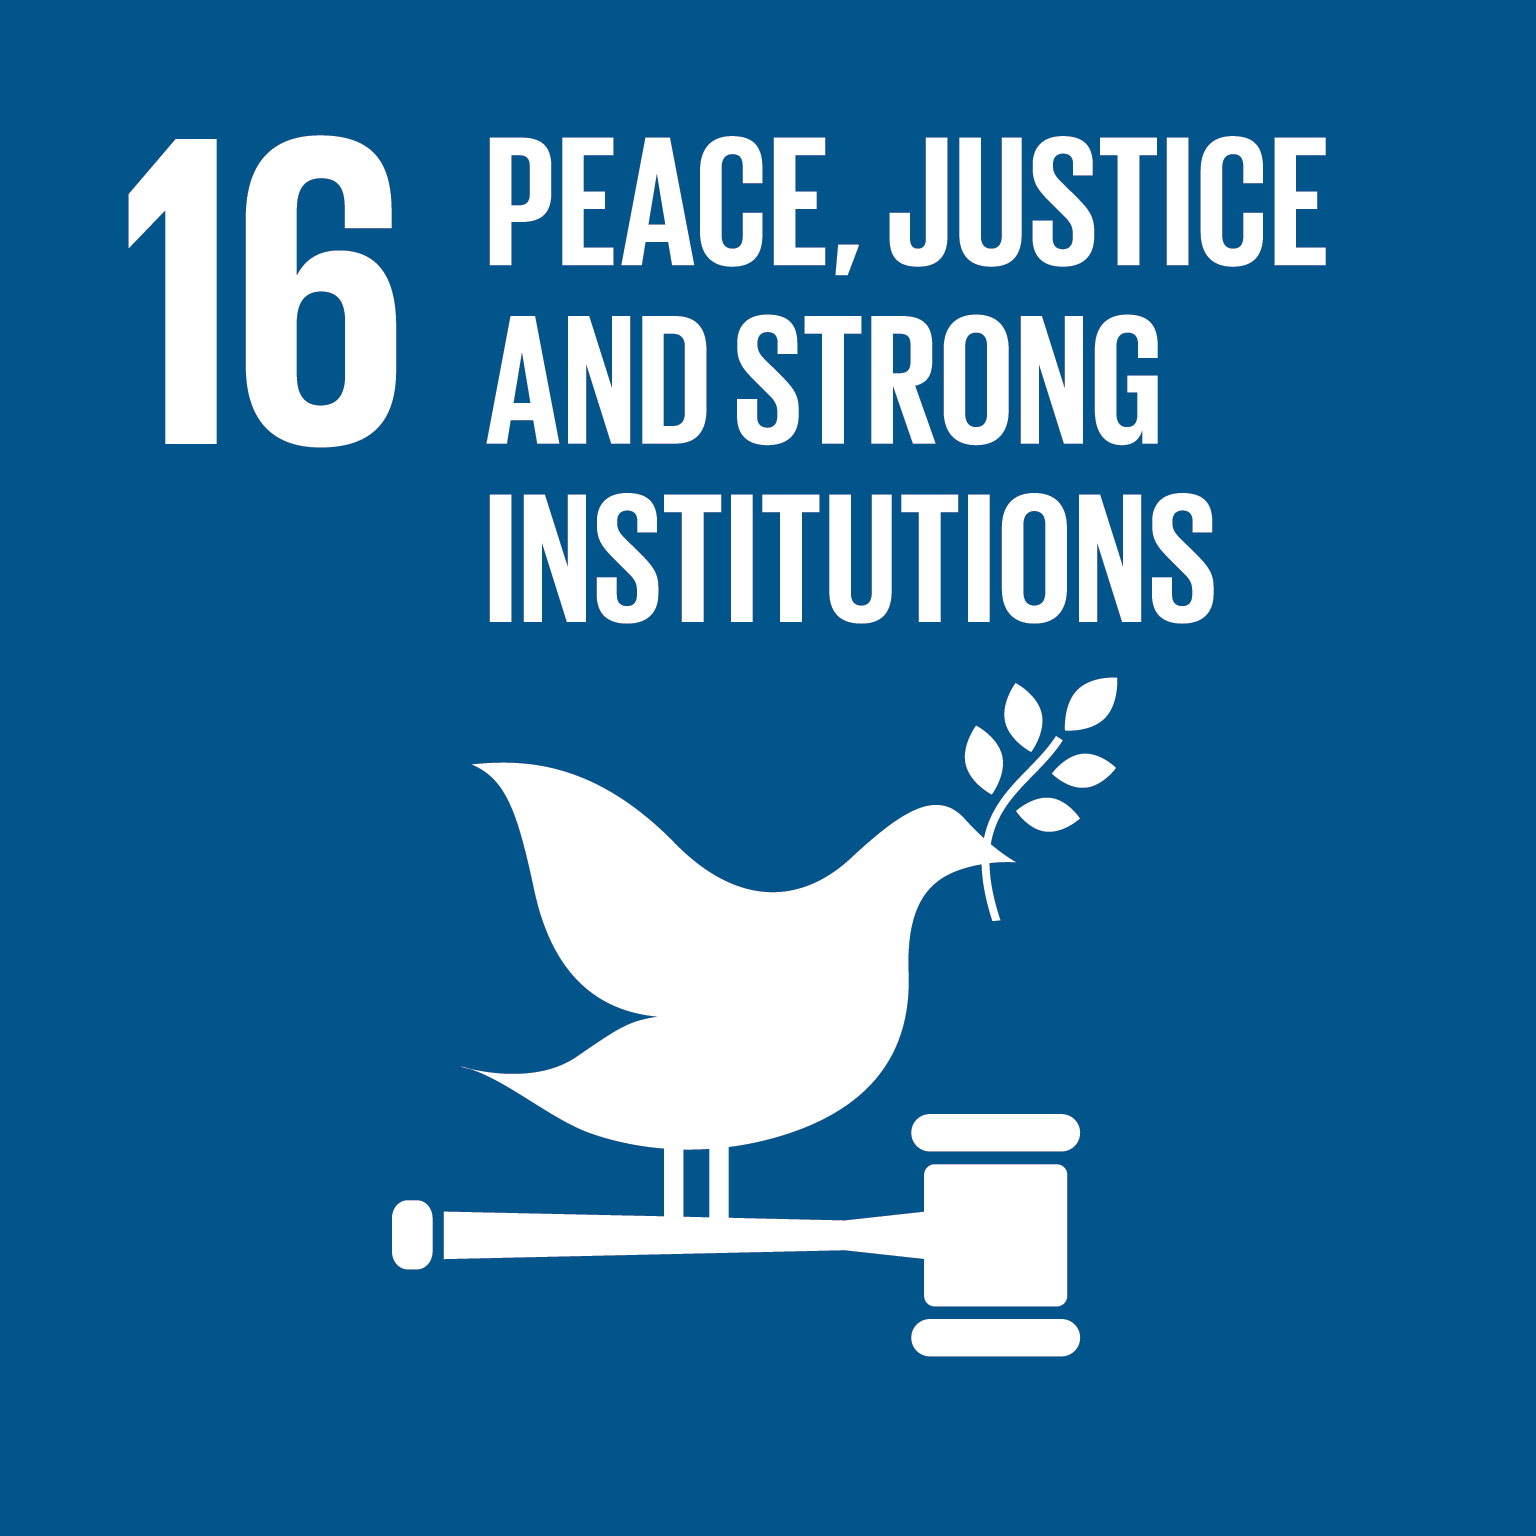 Peace, justice and strong institutions logo.